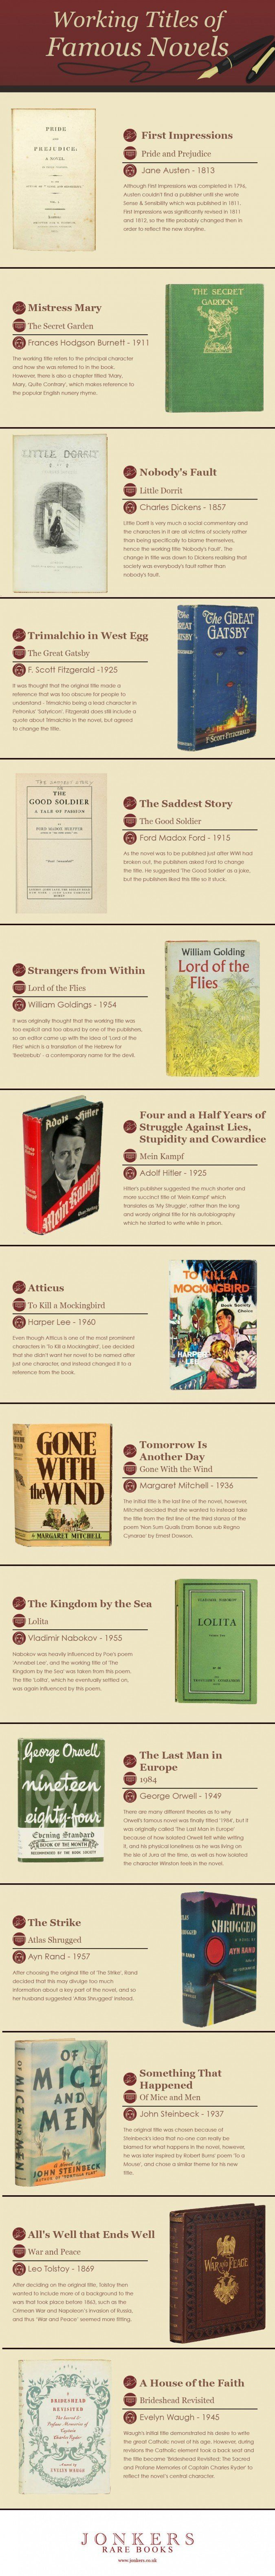 "<a href=""https://www.jonkers.co.uk/blog/working-titles-of-famous-novels"" target=""_blank"">This Jonkers infographic</a> te"